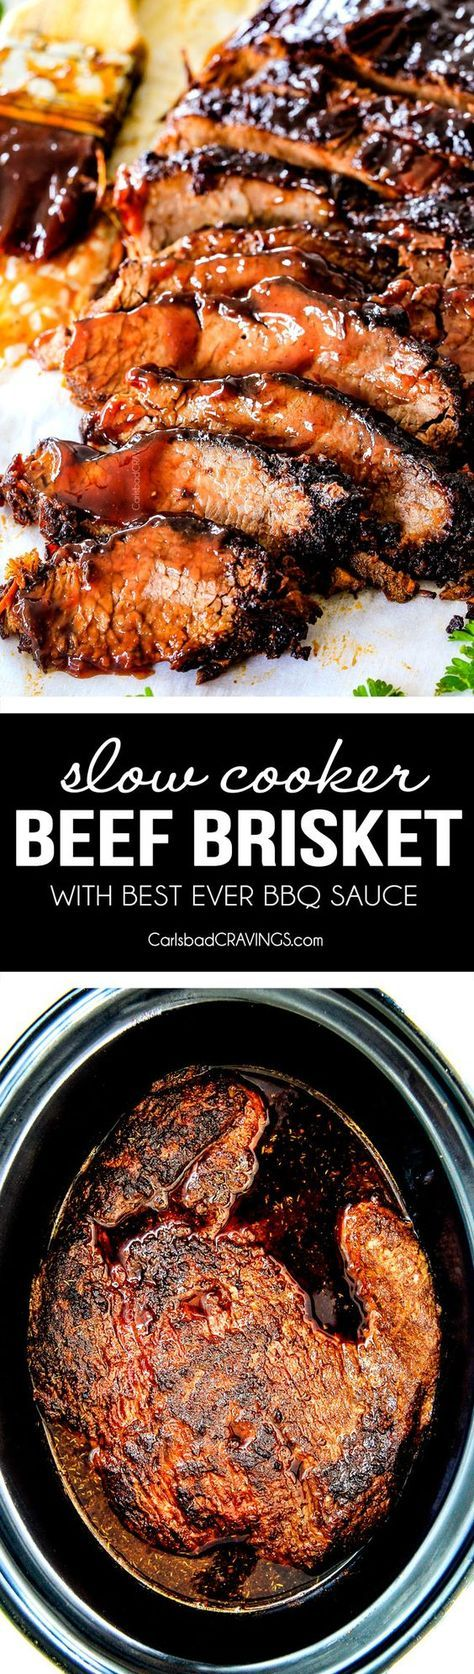 Photo of Slow Cooker Beef Brisket with Barbecue Sauce (Video!)